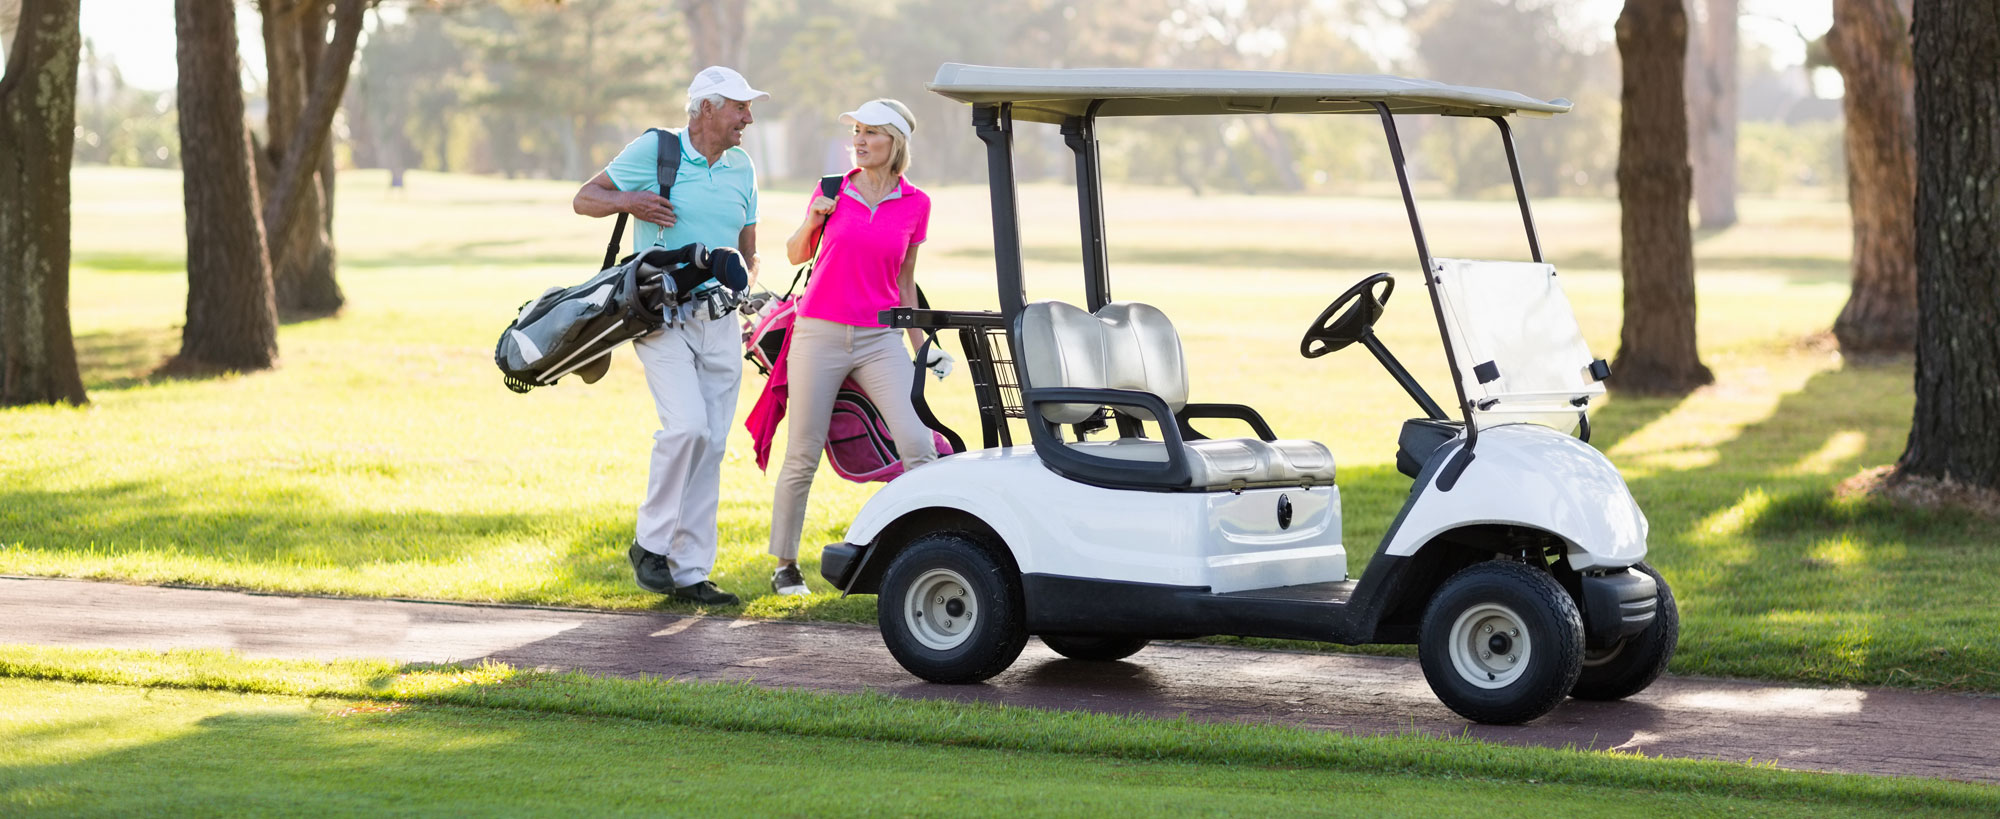 couple-playing-golf